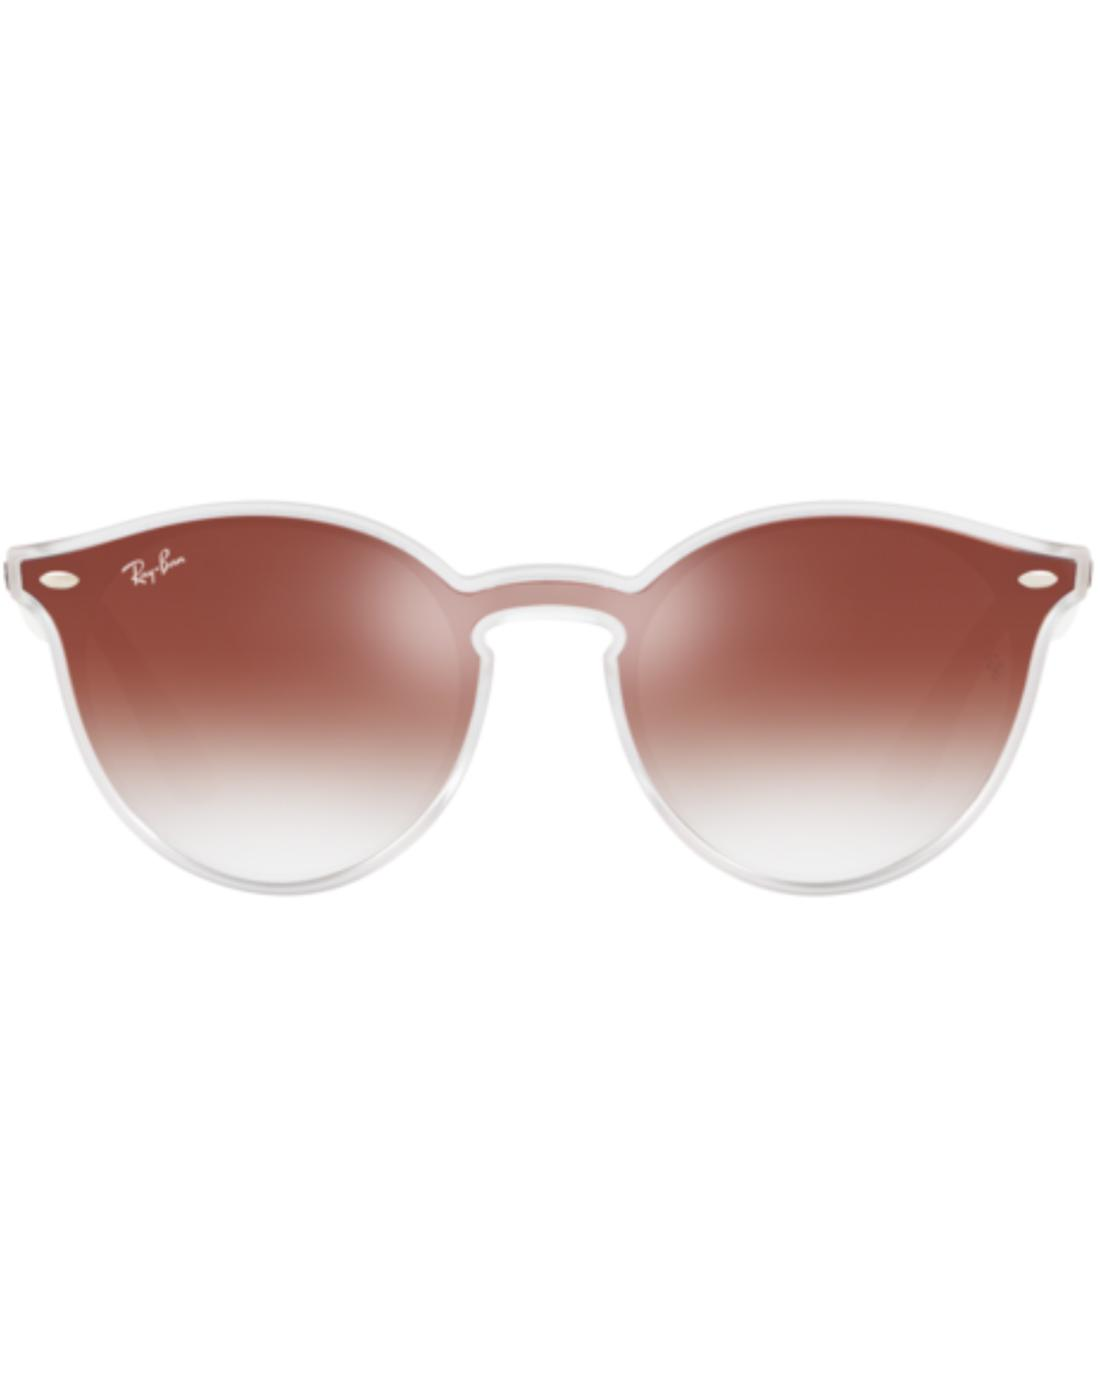 Blaze Clubround RAY-BAN Mirror Sunglasses in Red